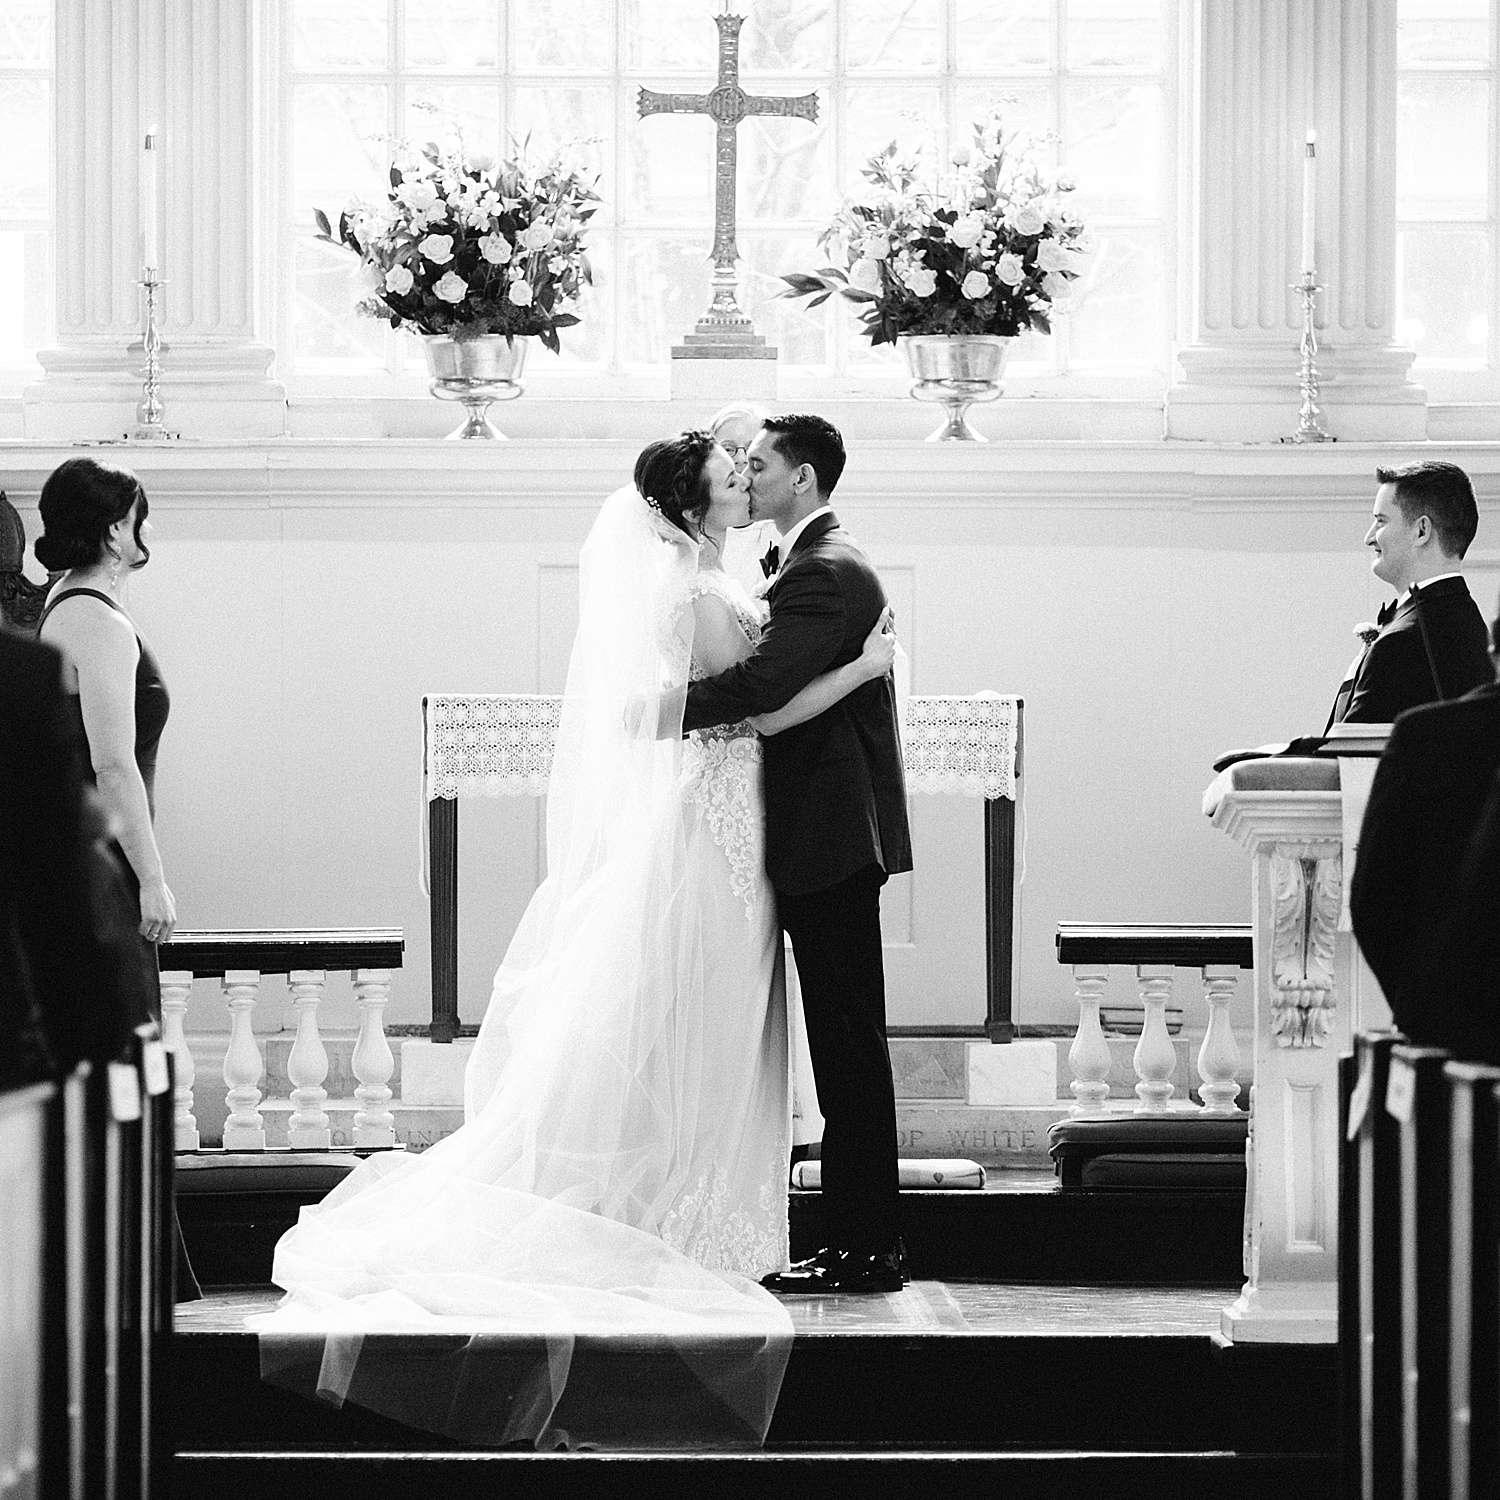 kirstentony_uniontrust_finleycatering_christchurch_philadelphia_wedding_image_0714.jpg